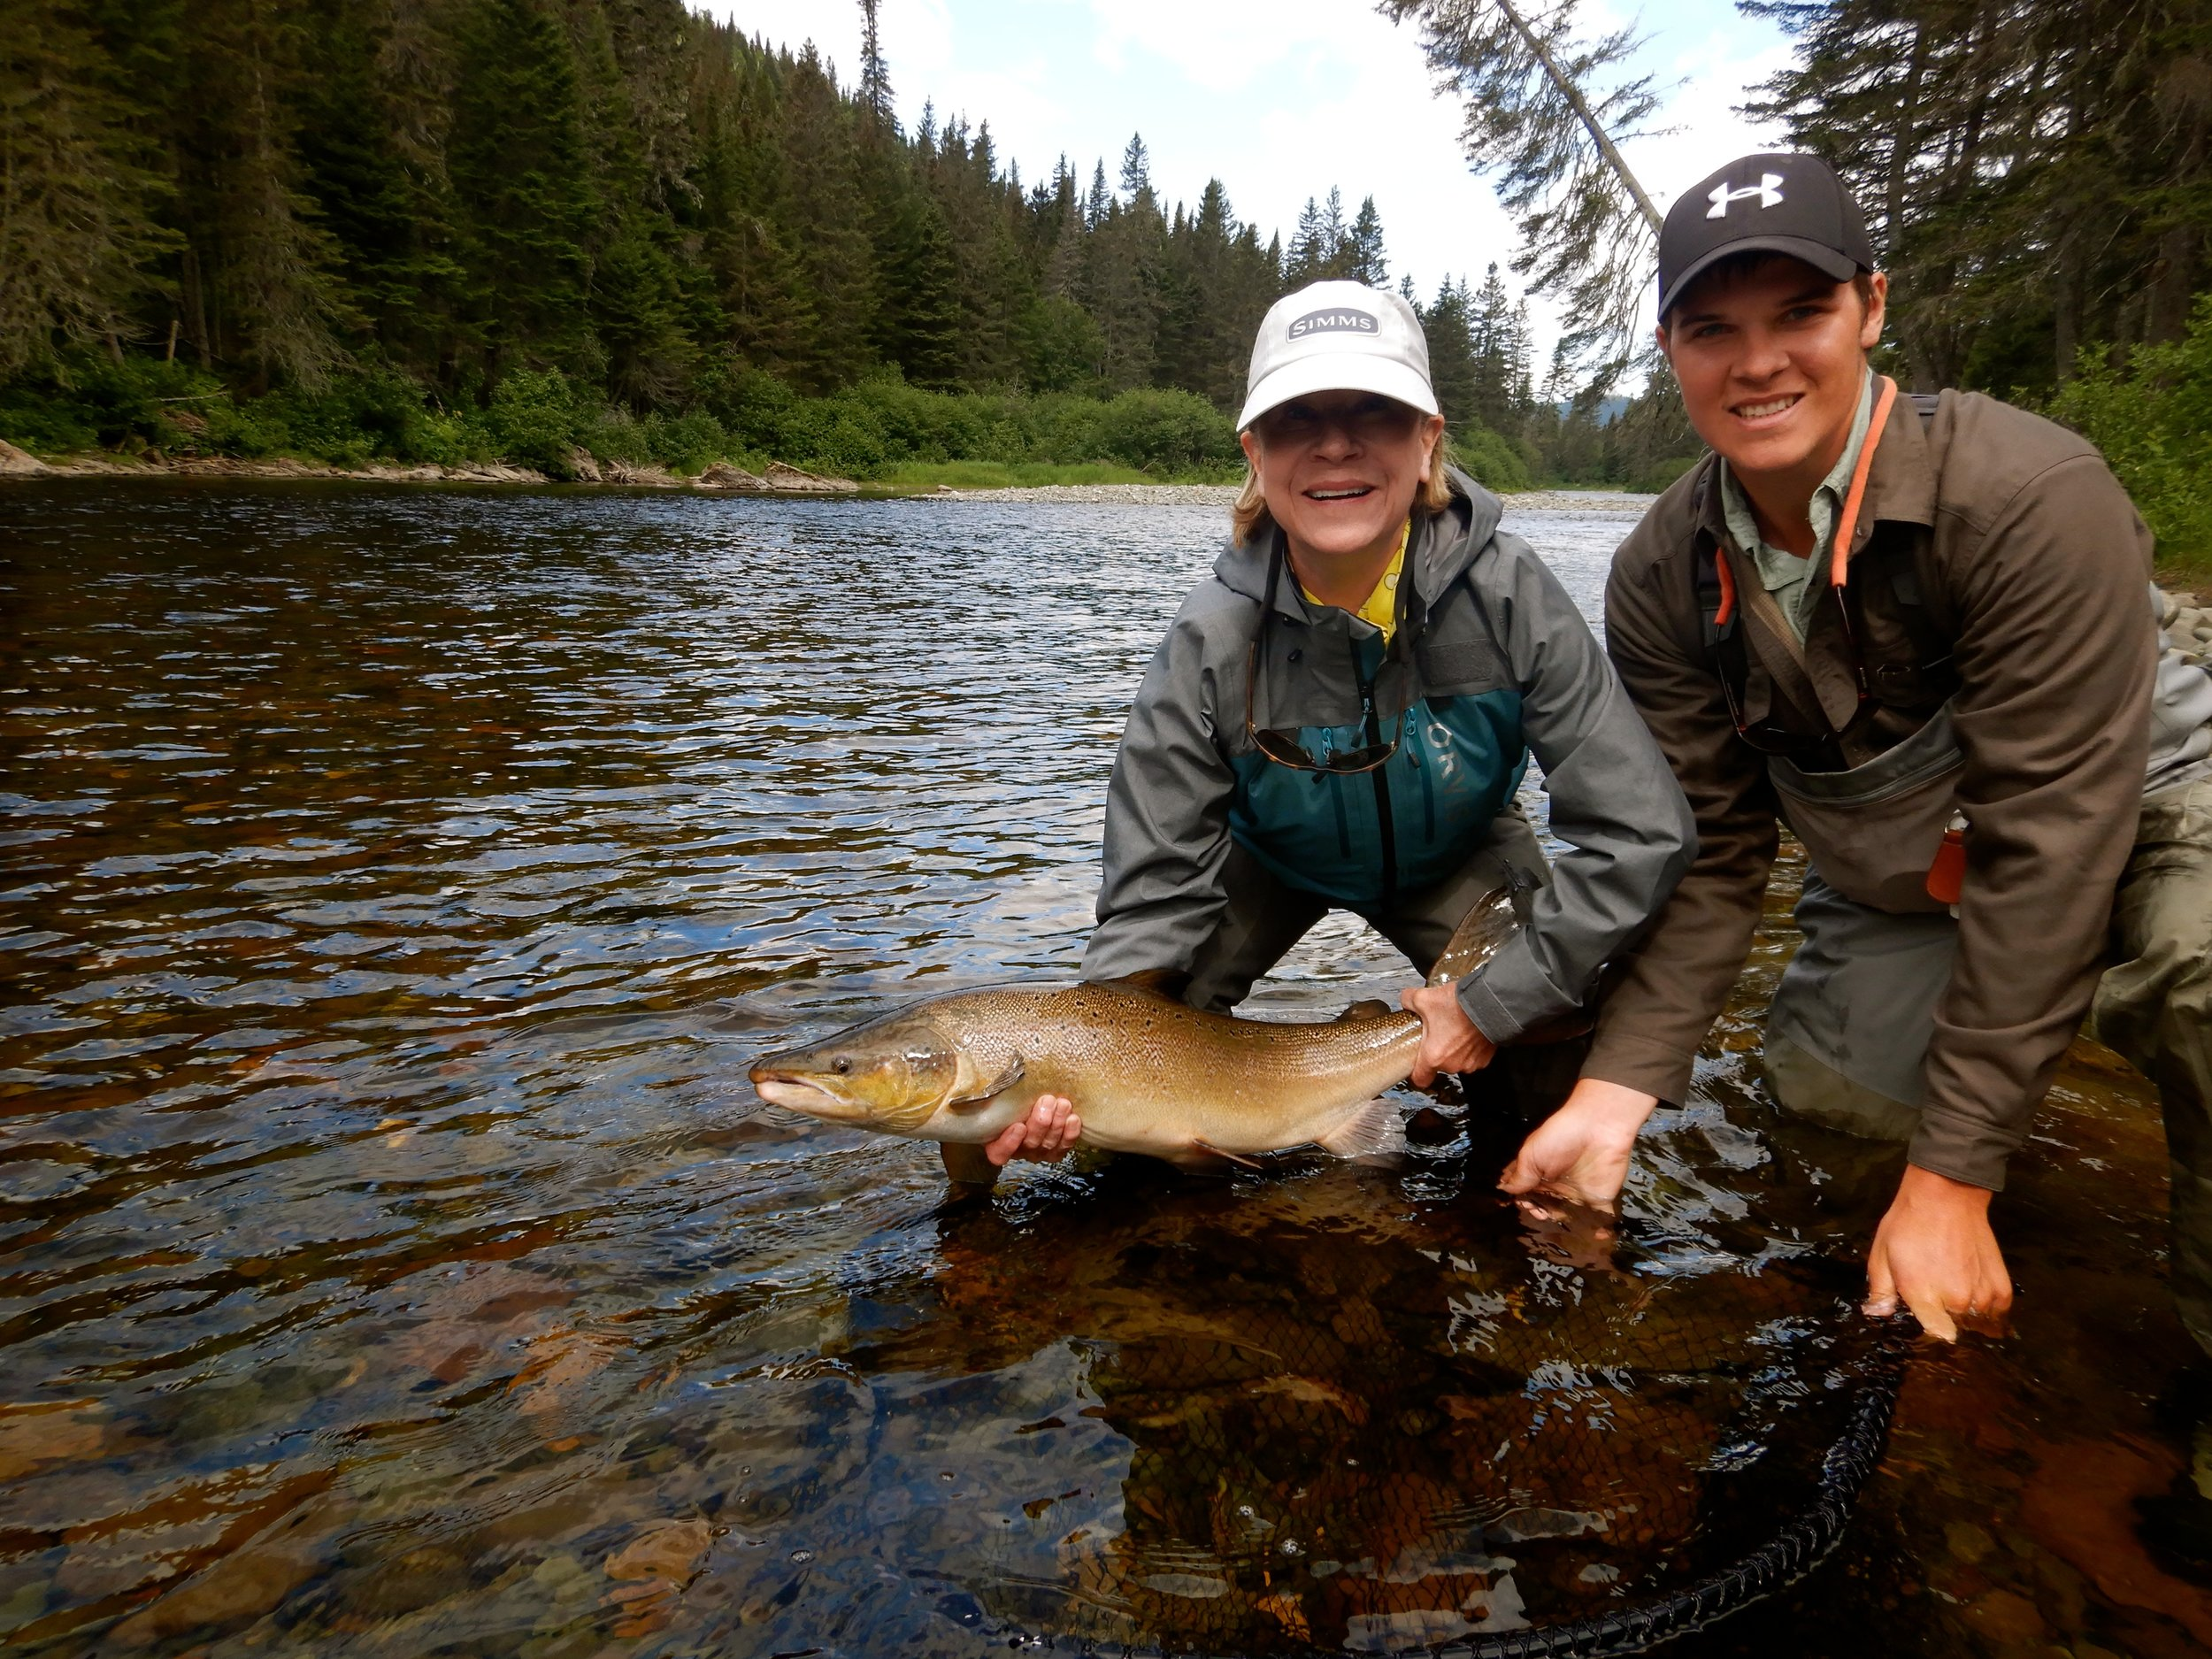 This is the first time we've had the pleasure of welcoming Kathy Benton to Camp Bonaventure and she is an absolute Gem! Here she is with her guide Nick releasing a beauty back into the Grand Cascapedia!